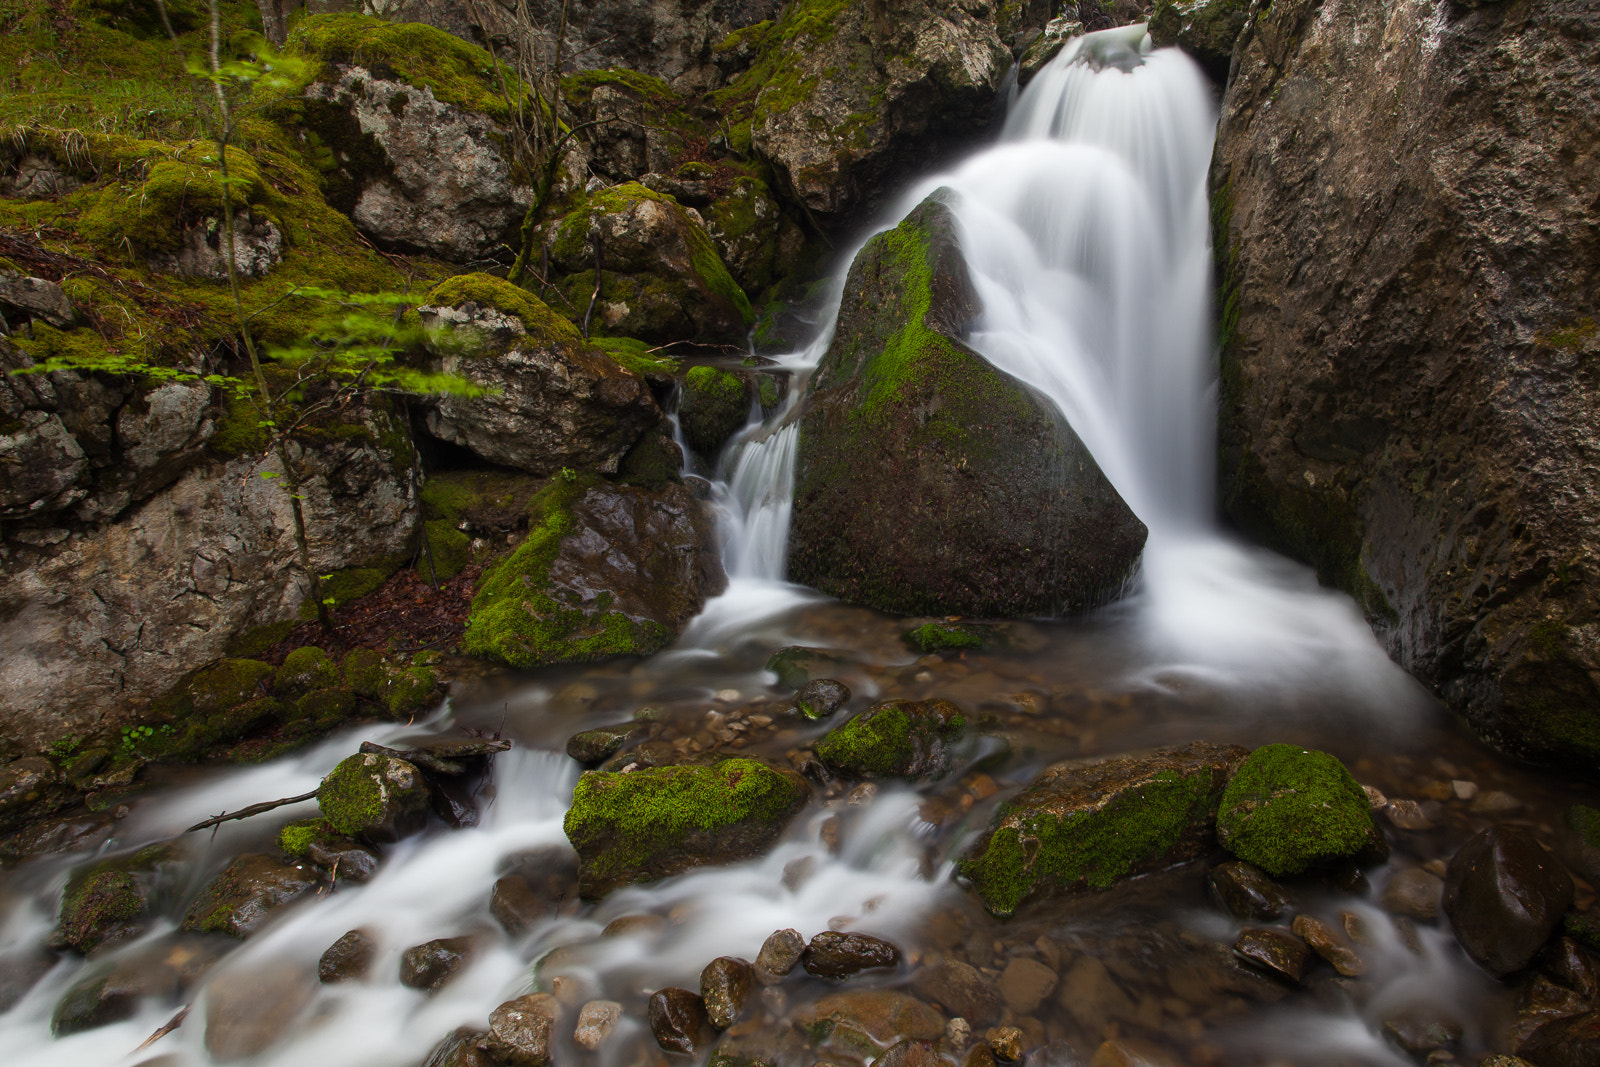 Photograph Water, wind and stones by Andoni Lamborena on 500px